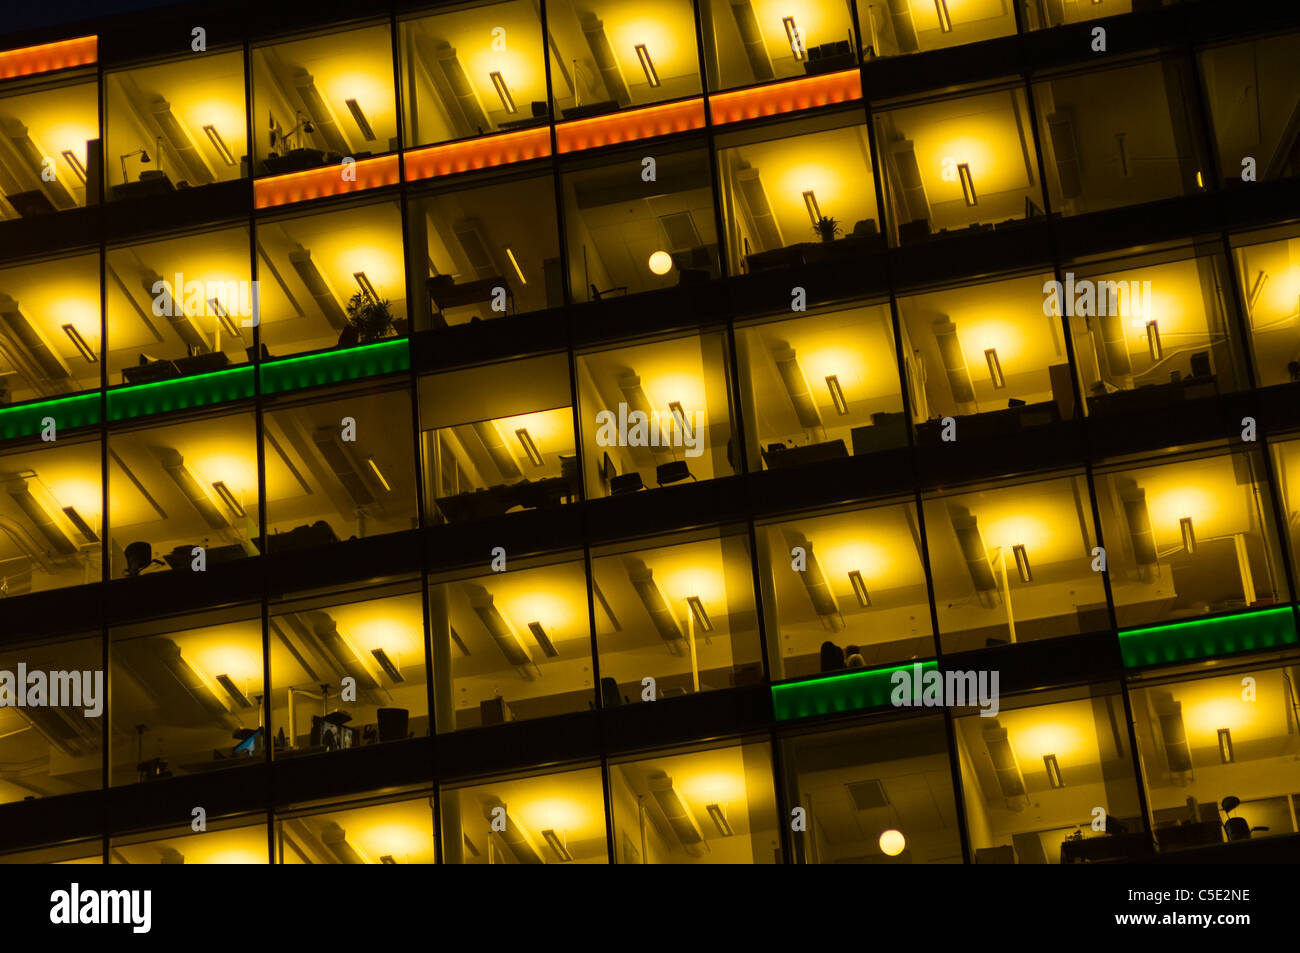 Low angle view of illuminated open-plan office building with windows - Stock Image